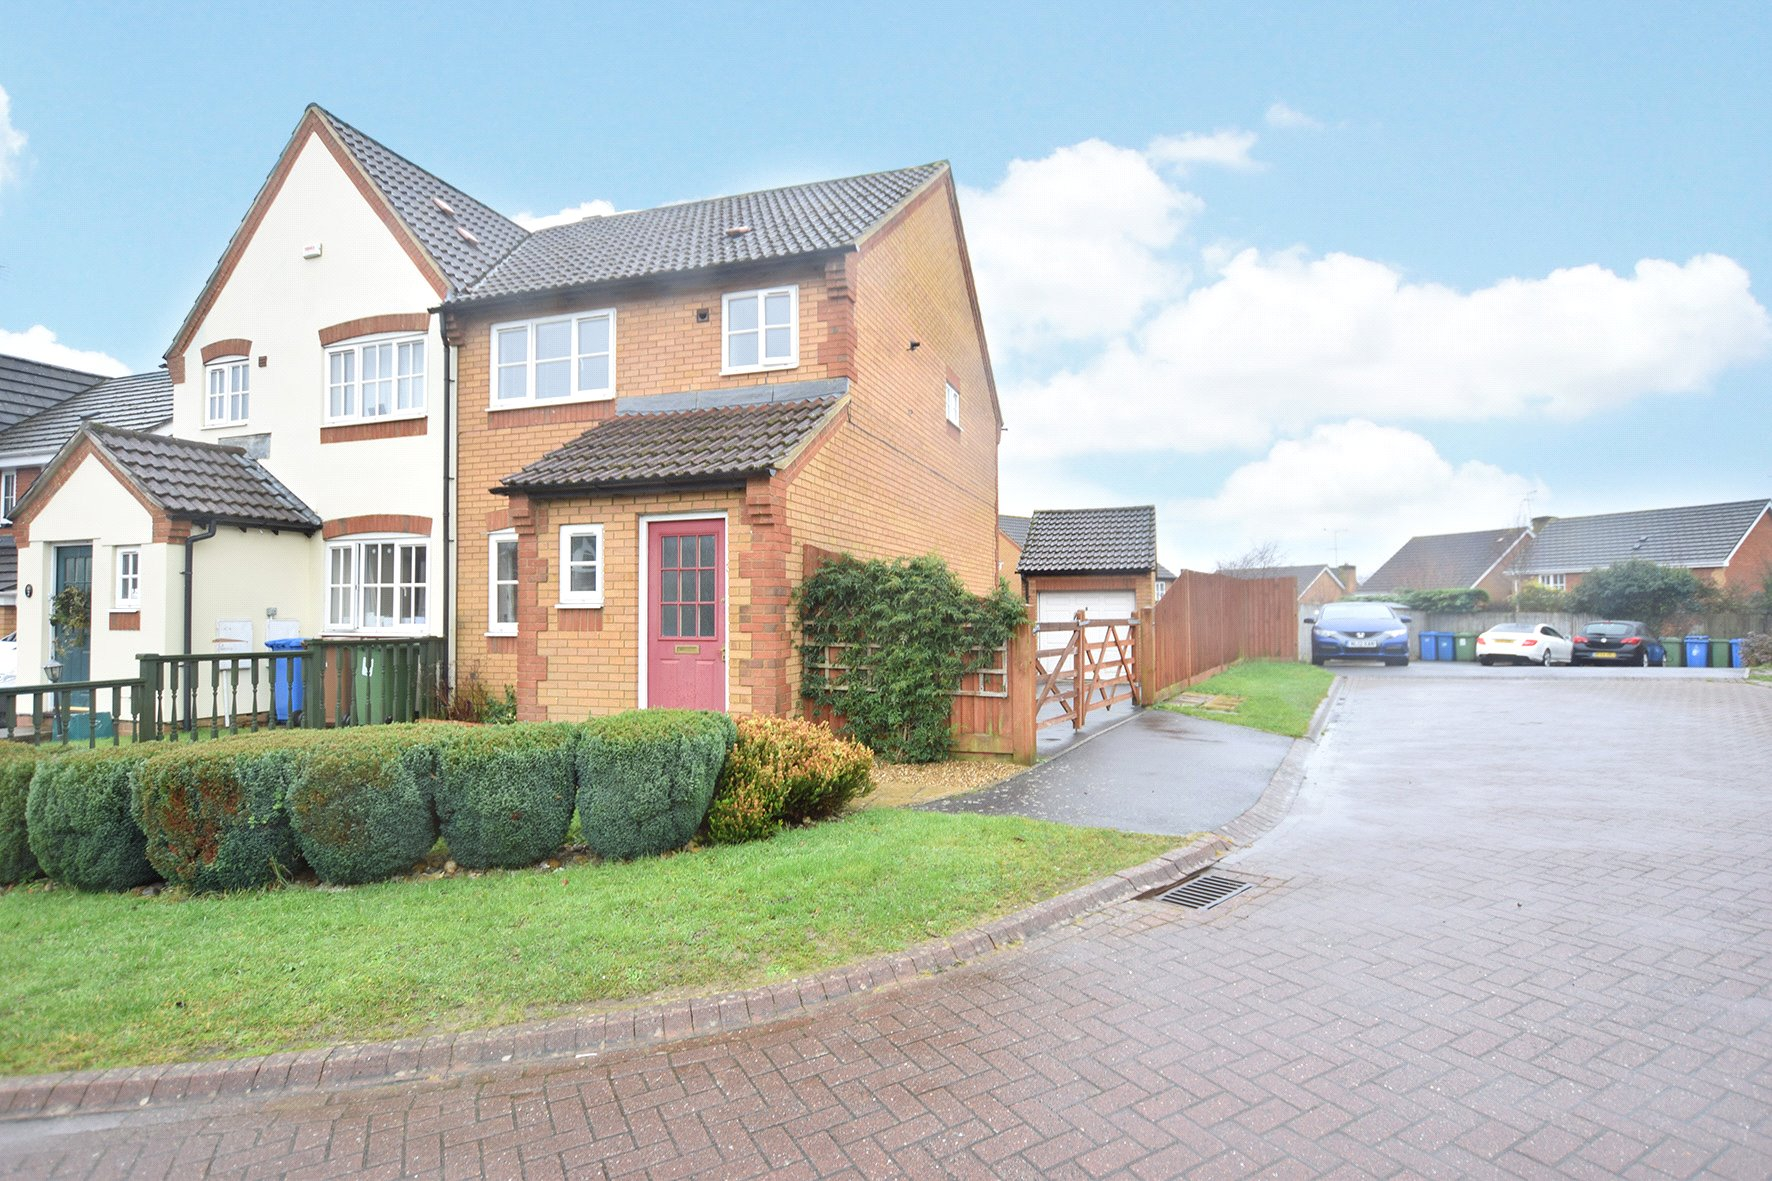 3 Bedrooms Semi Detached House for sale in Marcheria Close, Bracknell, Berkshire, RG12